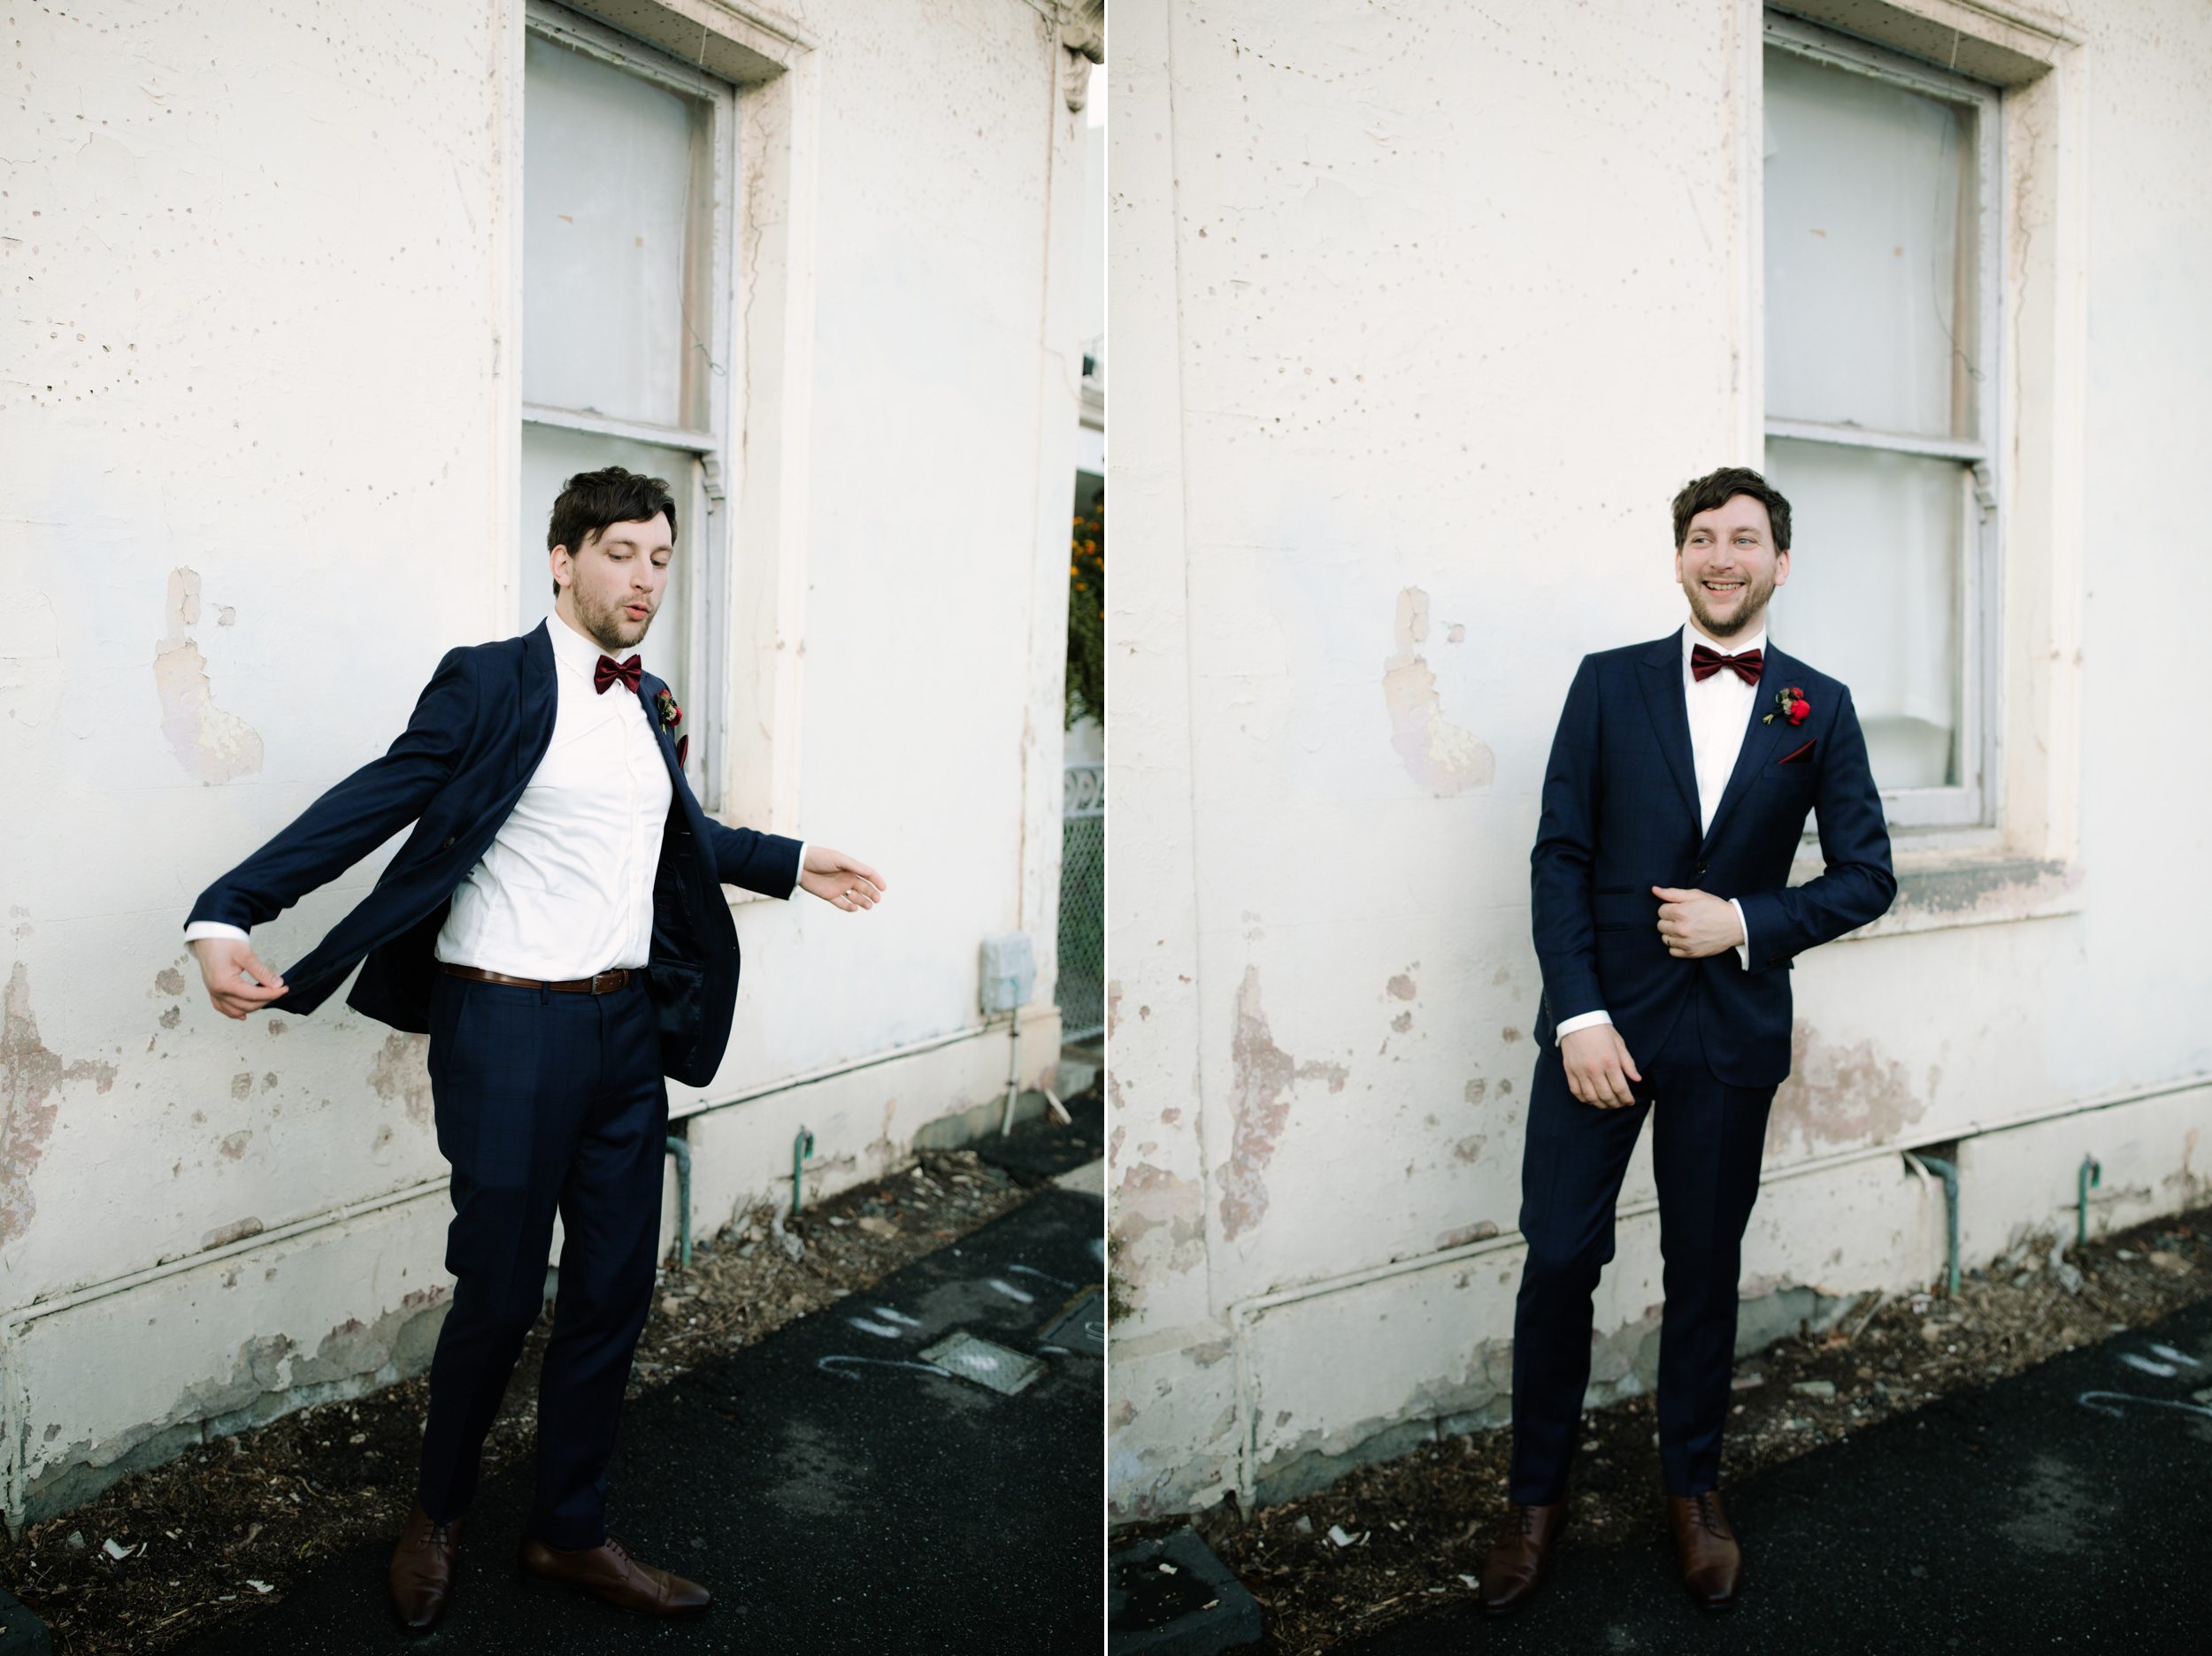 I_Got_You_Babe_Weddings_Emily_Matt_Rupert_Glasshaus_Melbourne0158.JPG